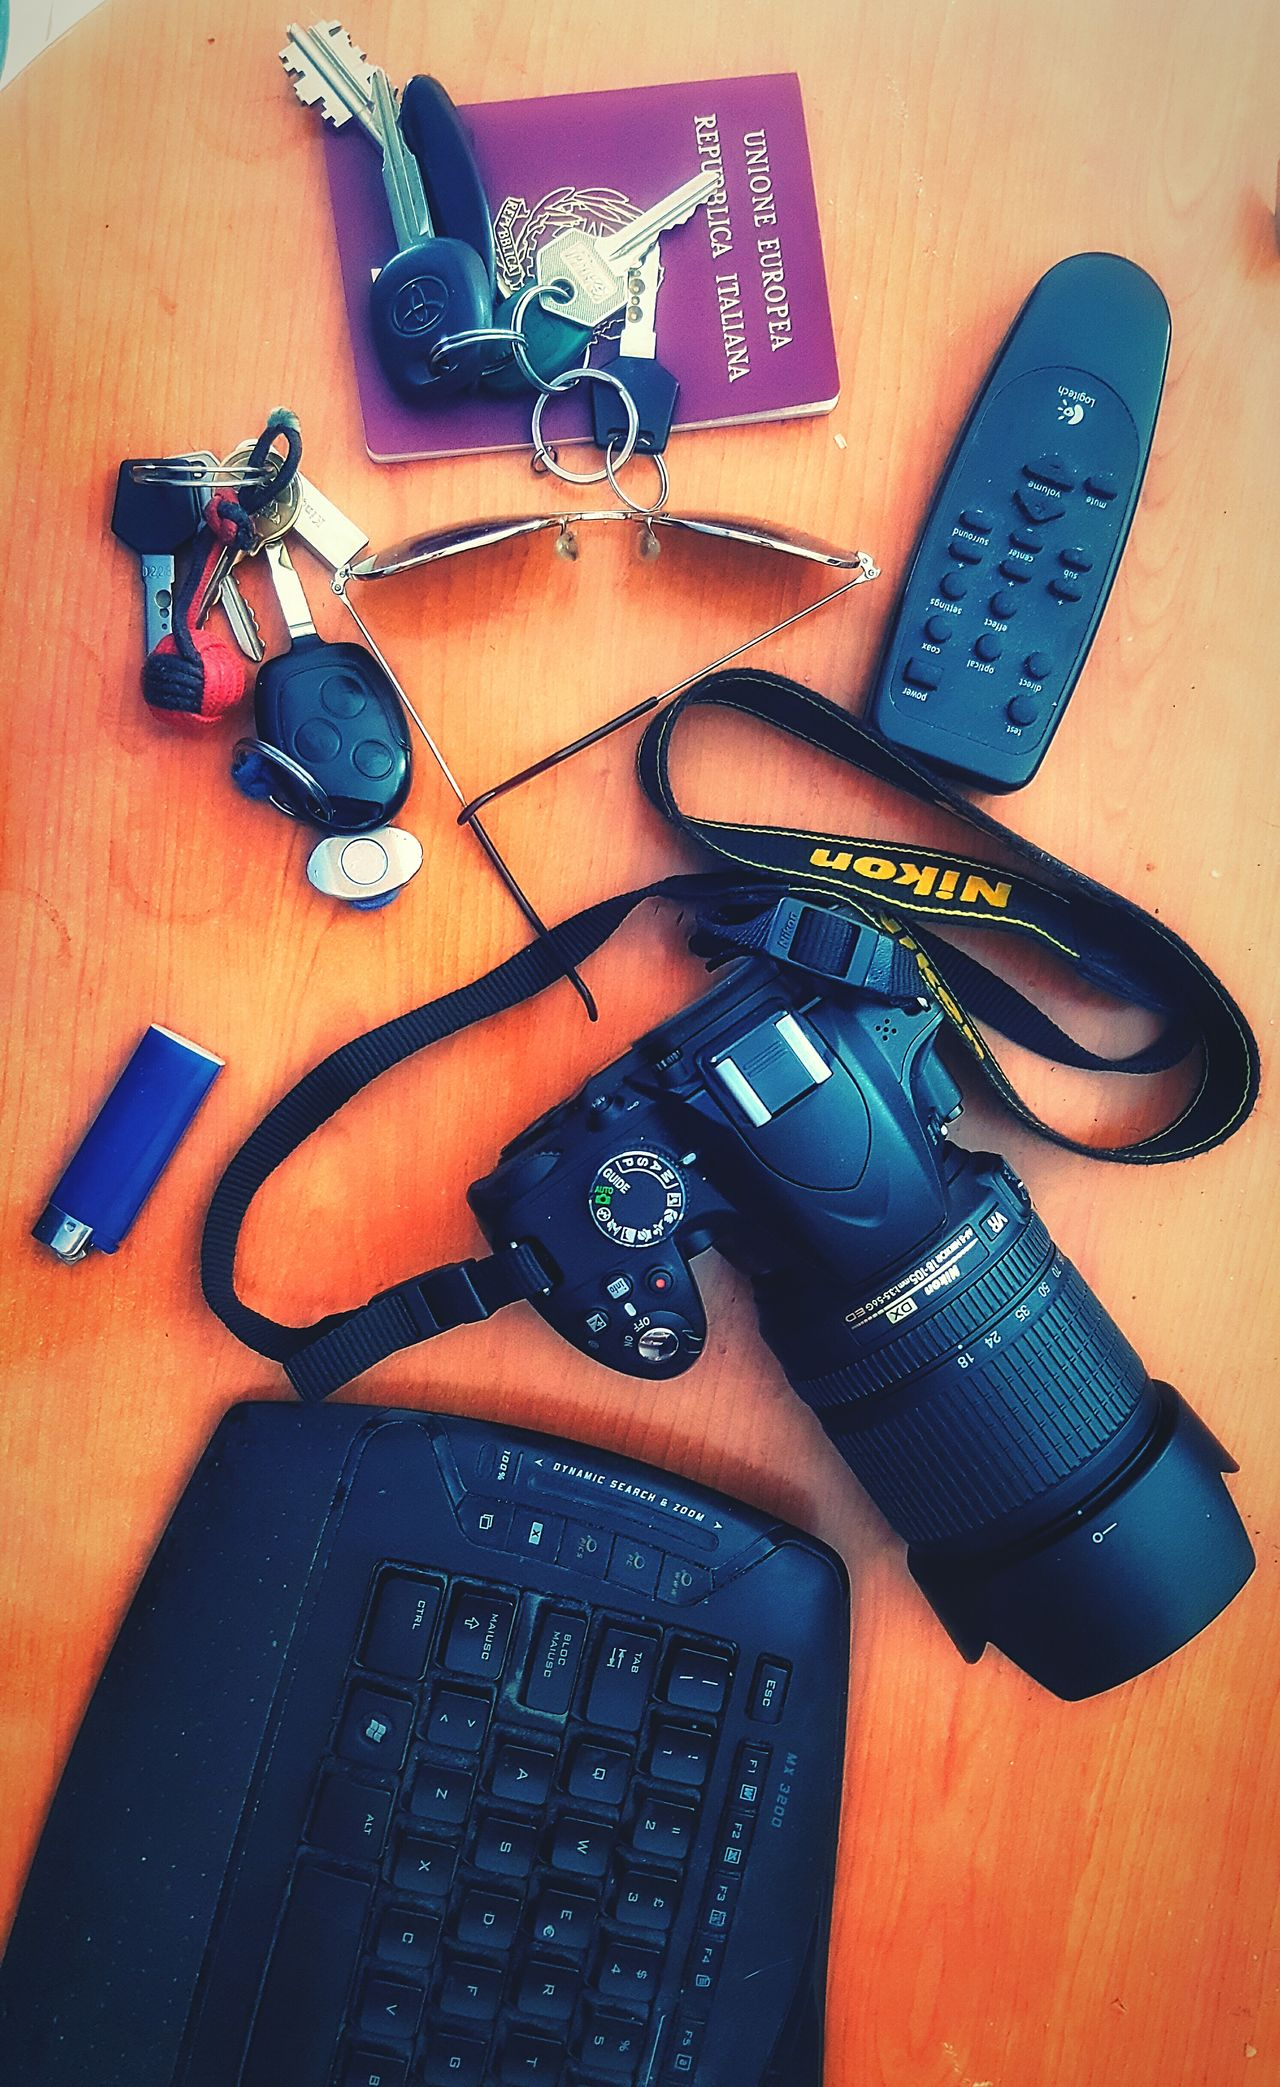 Nikon Nikon D3200 Desks From Above Desk Home PhonePhotography Phonecamera Phone Photography Mess Room Planning Day Planning A Trip High Angle View Camera Inside My Room